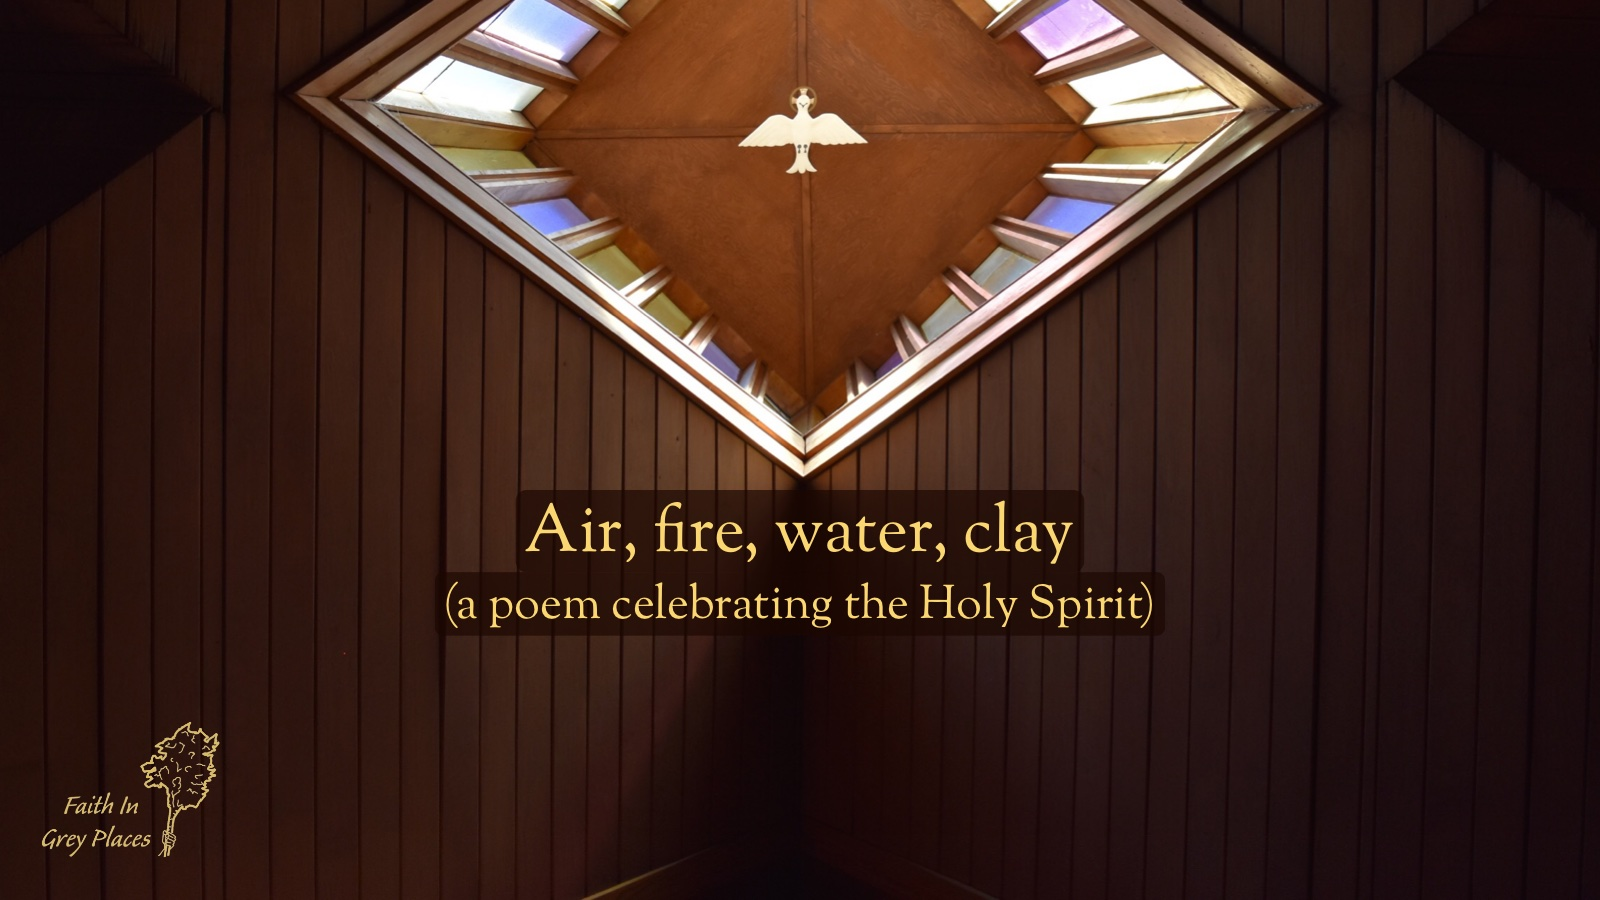 Picture looking up at the wooden ceiling of a church, with the image of a dove in the middle of a quadrangle. Text over the top: Air, fire, water, clay (a poem celebrating the Holy Spirit) Faith in Grey Places